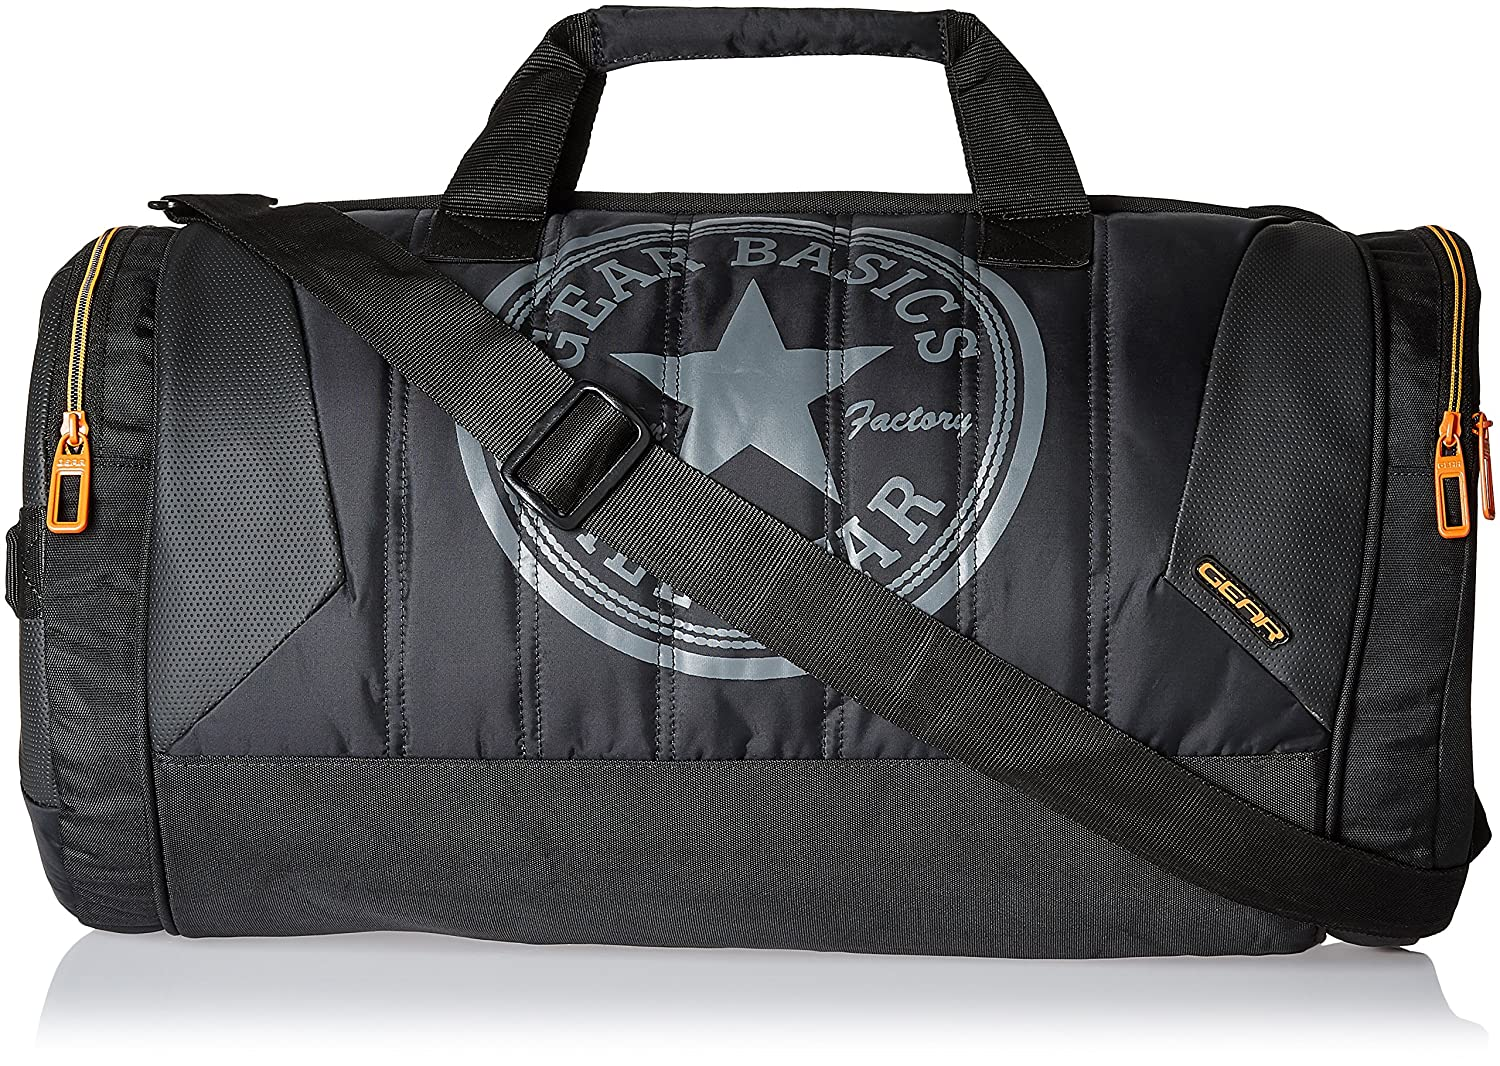 Gear Polyester 47 cms Black and Orange Travel Duffel (METDFPRO20106)   Amazon.in  Bags, Wallets   Luggage 85f3a0696a